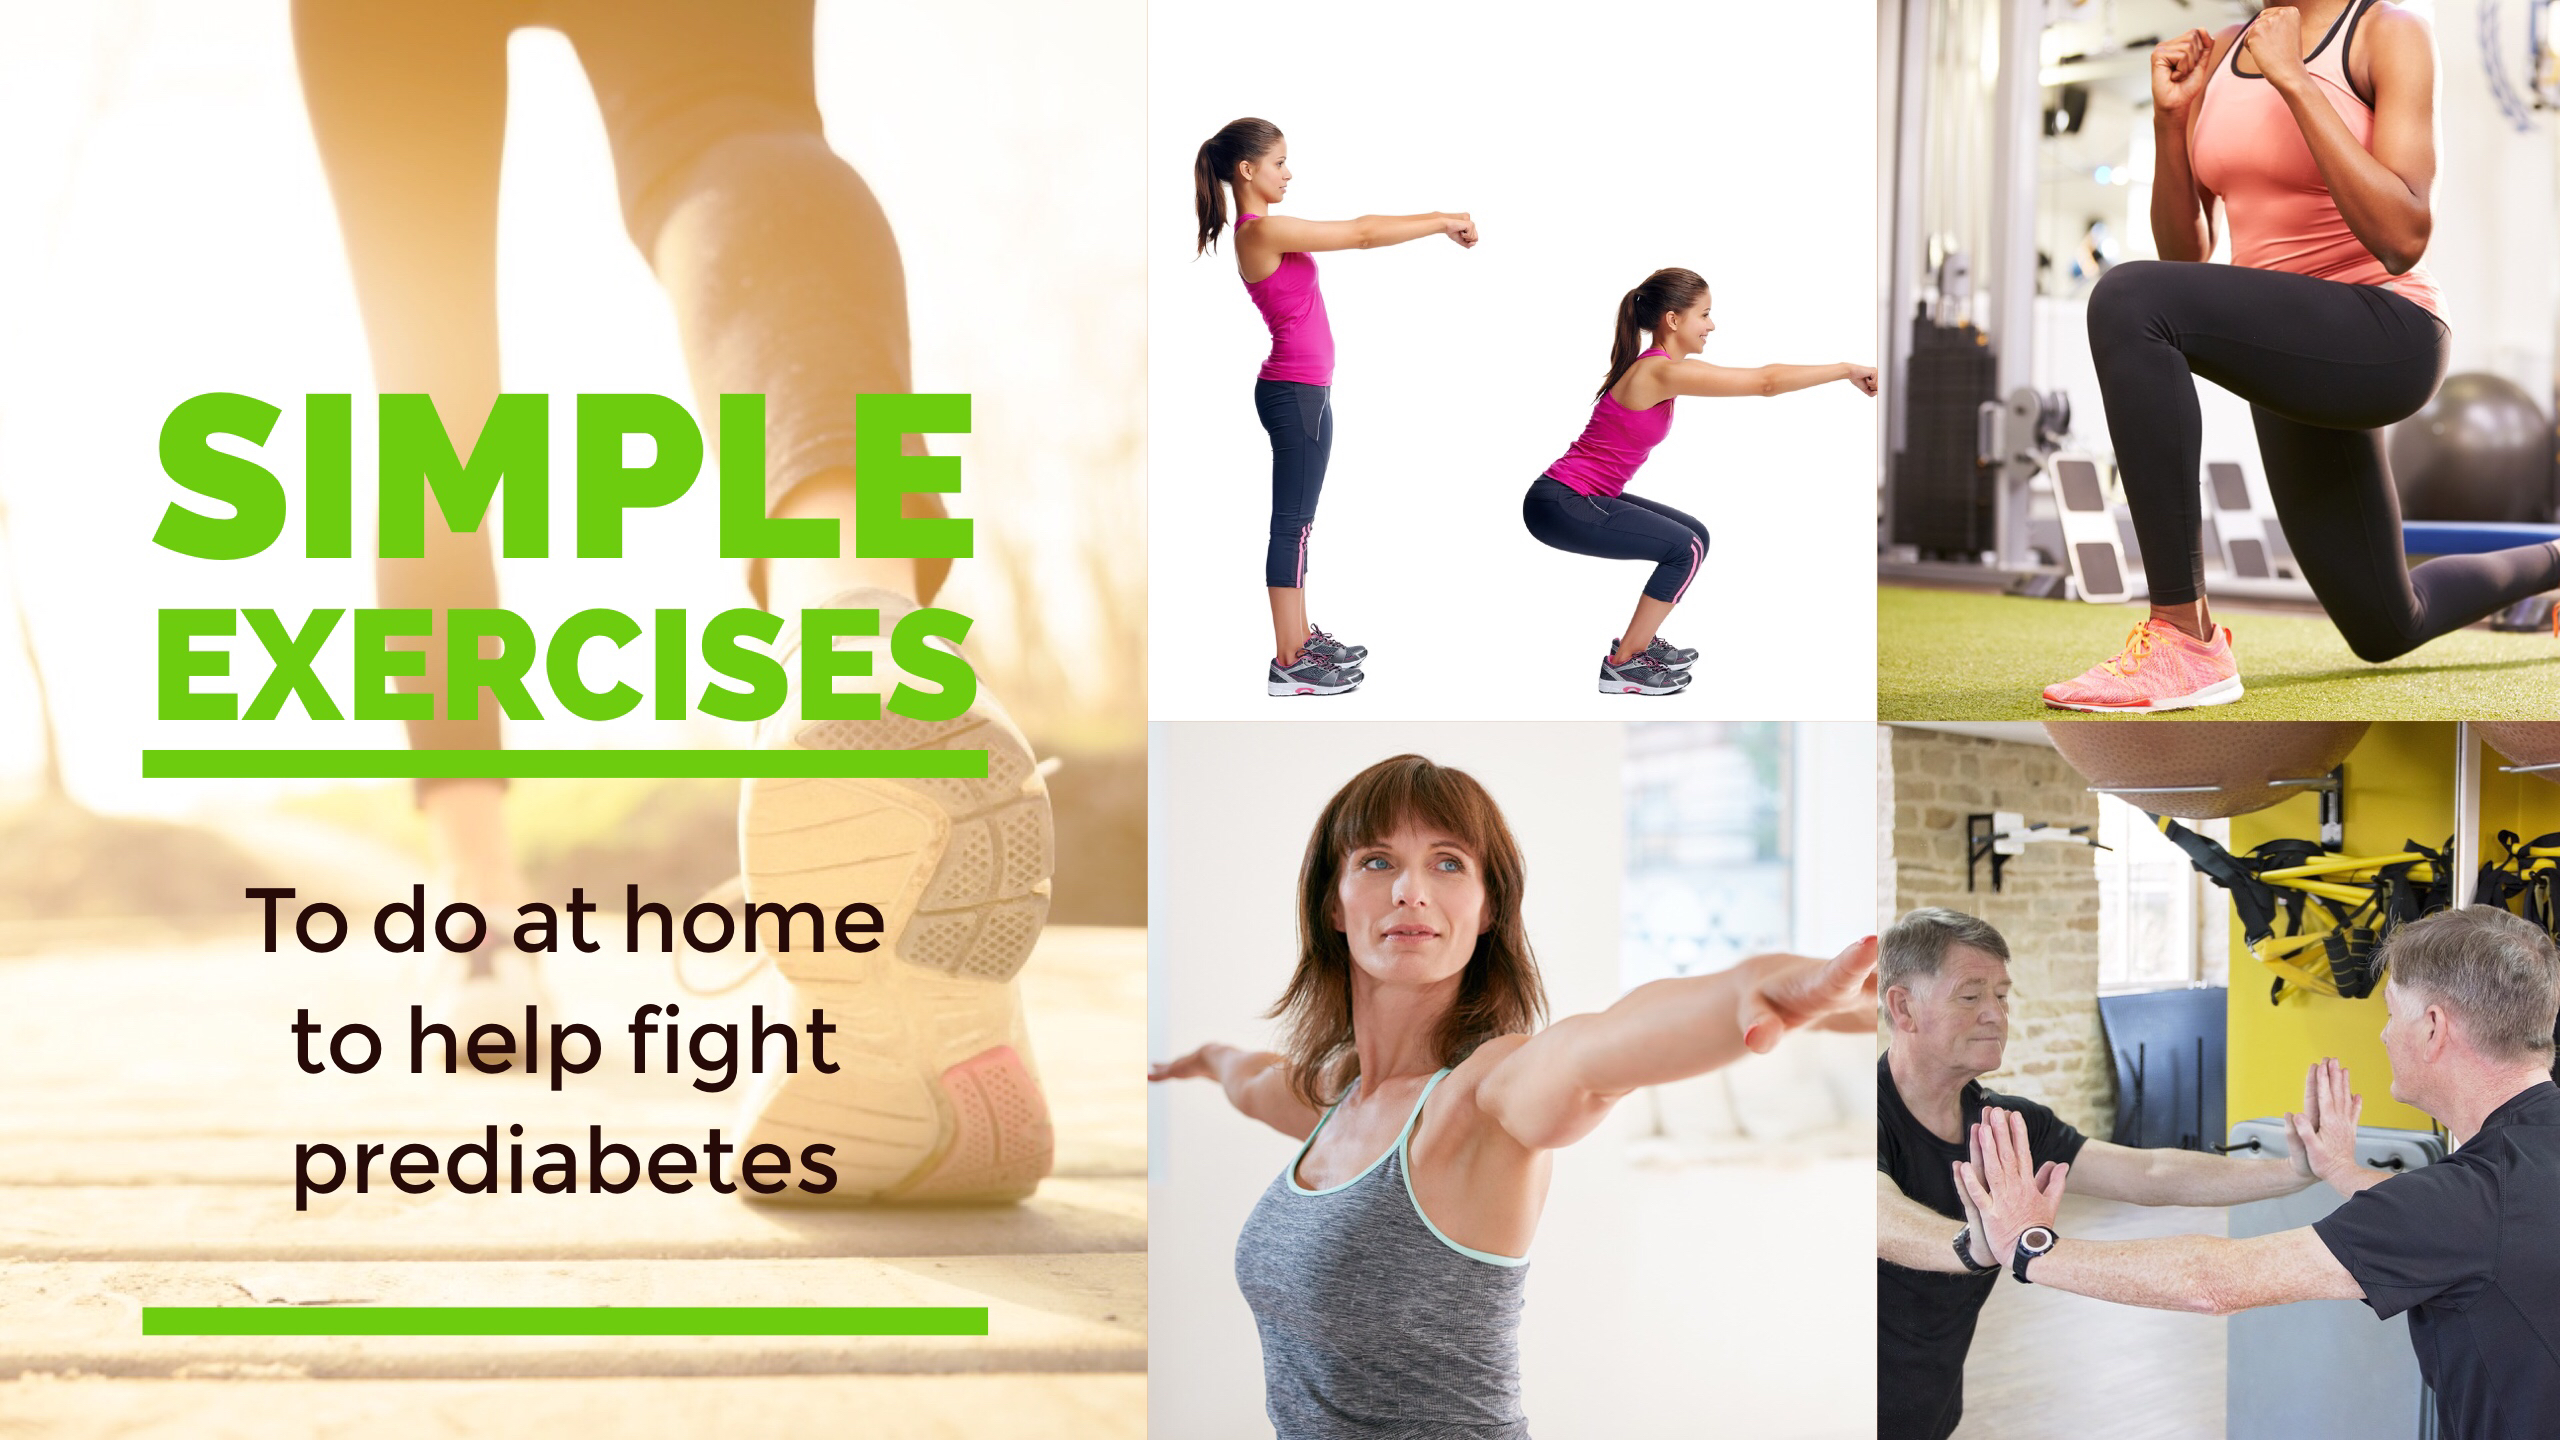 The Best Workout To Fight Prediabetes